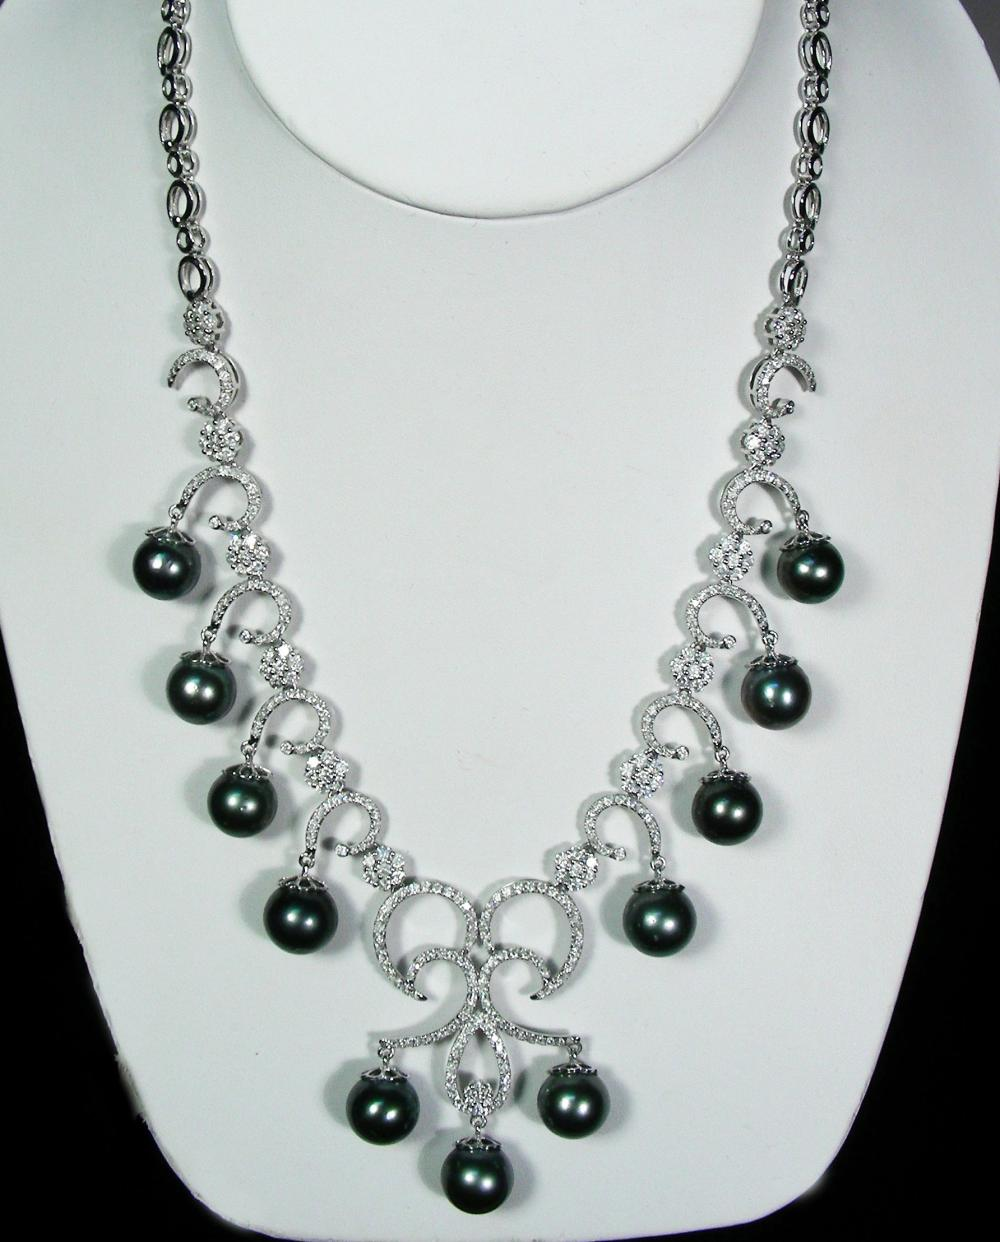 SPECTACULAR LADIES 14K WHITE GOLD, BLACK SOUTH SEA TAHITIAN PEARL & DIAMOND NECKLACE